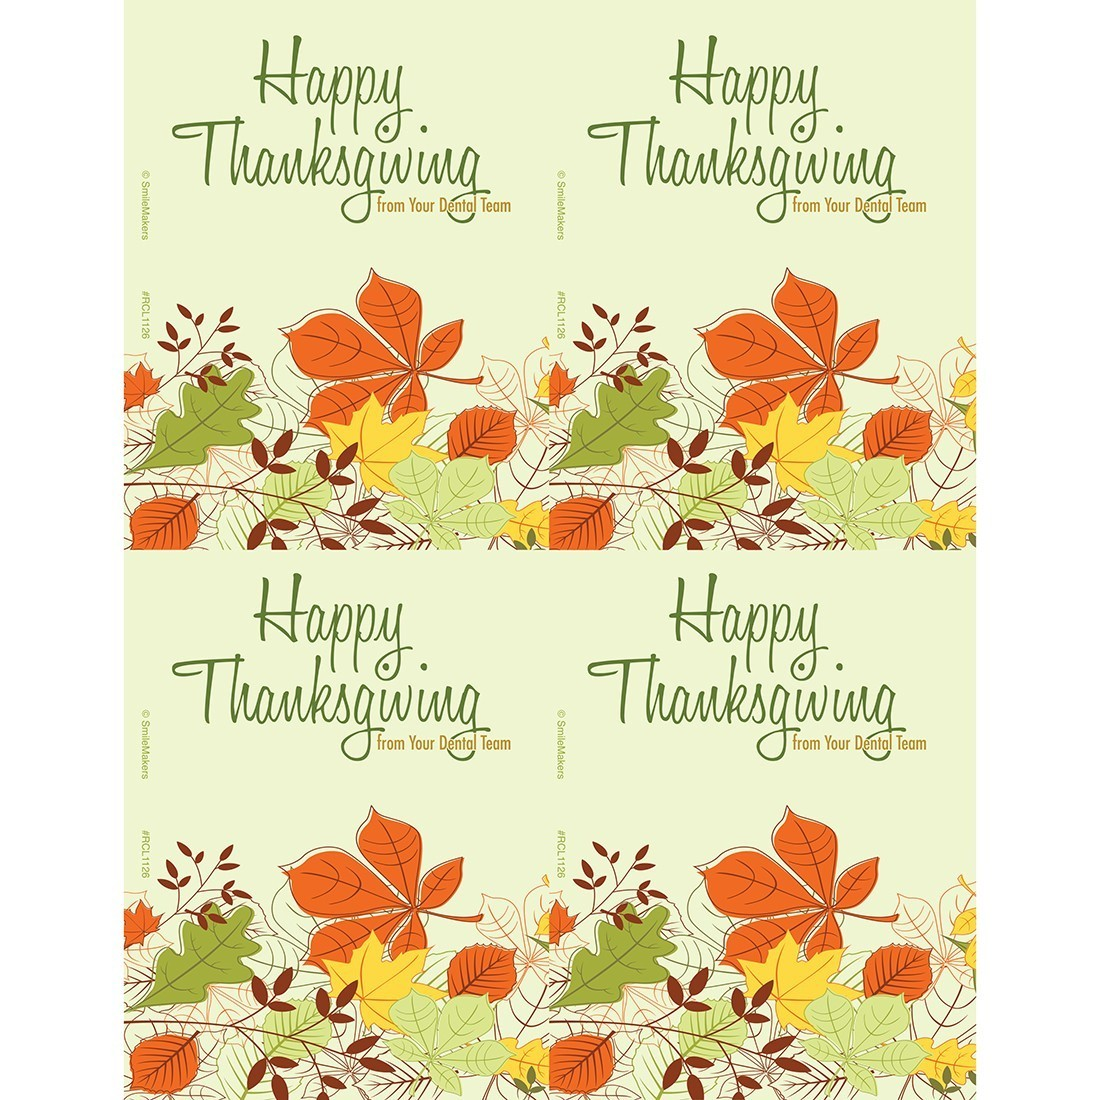 Happy Thanksgiving Dental Laser Cards [image]